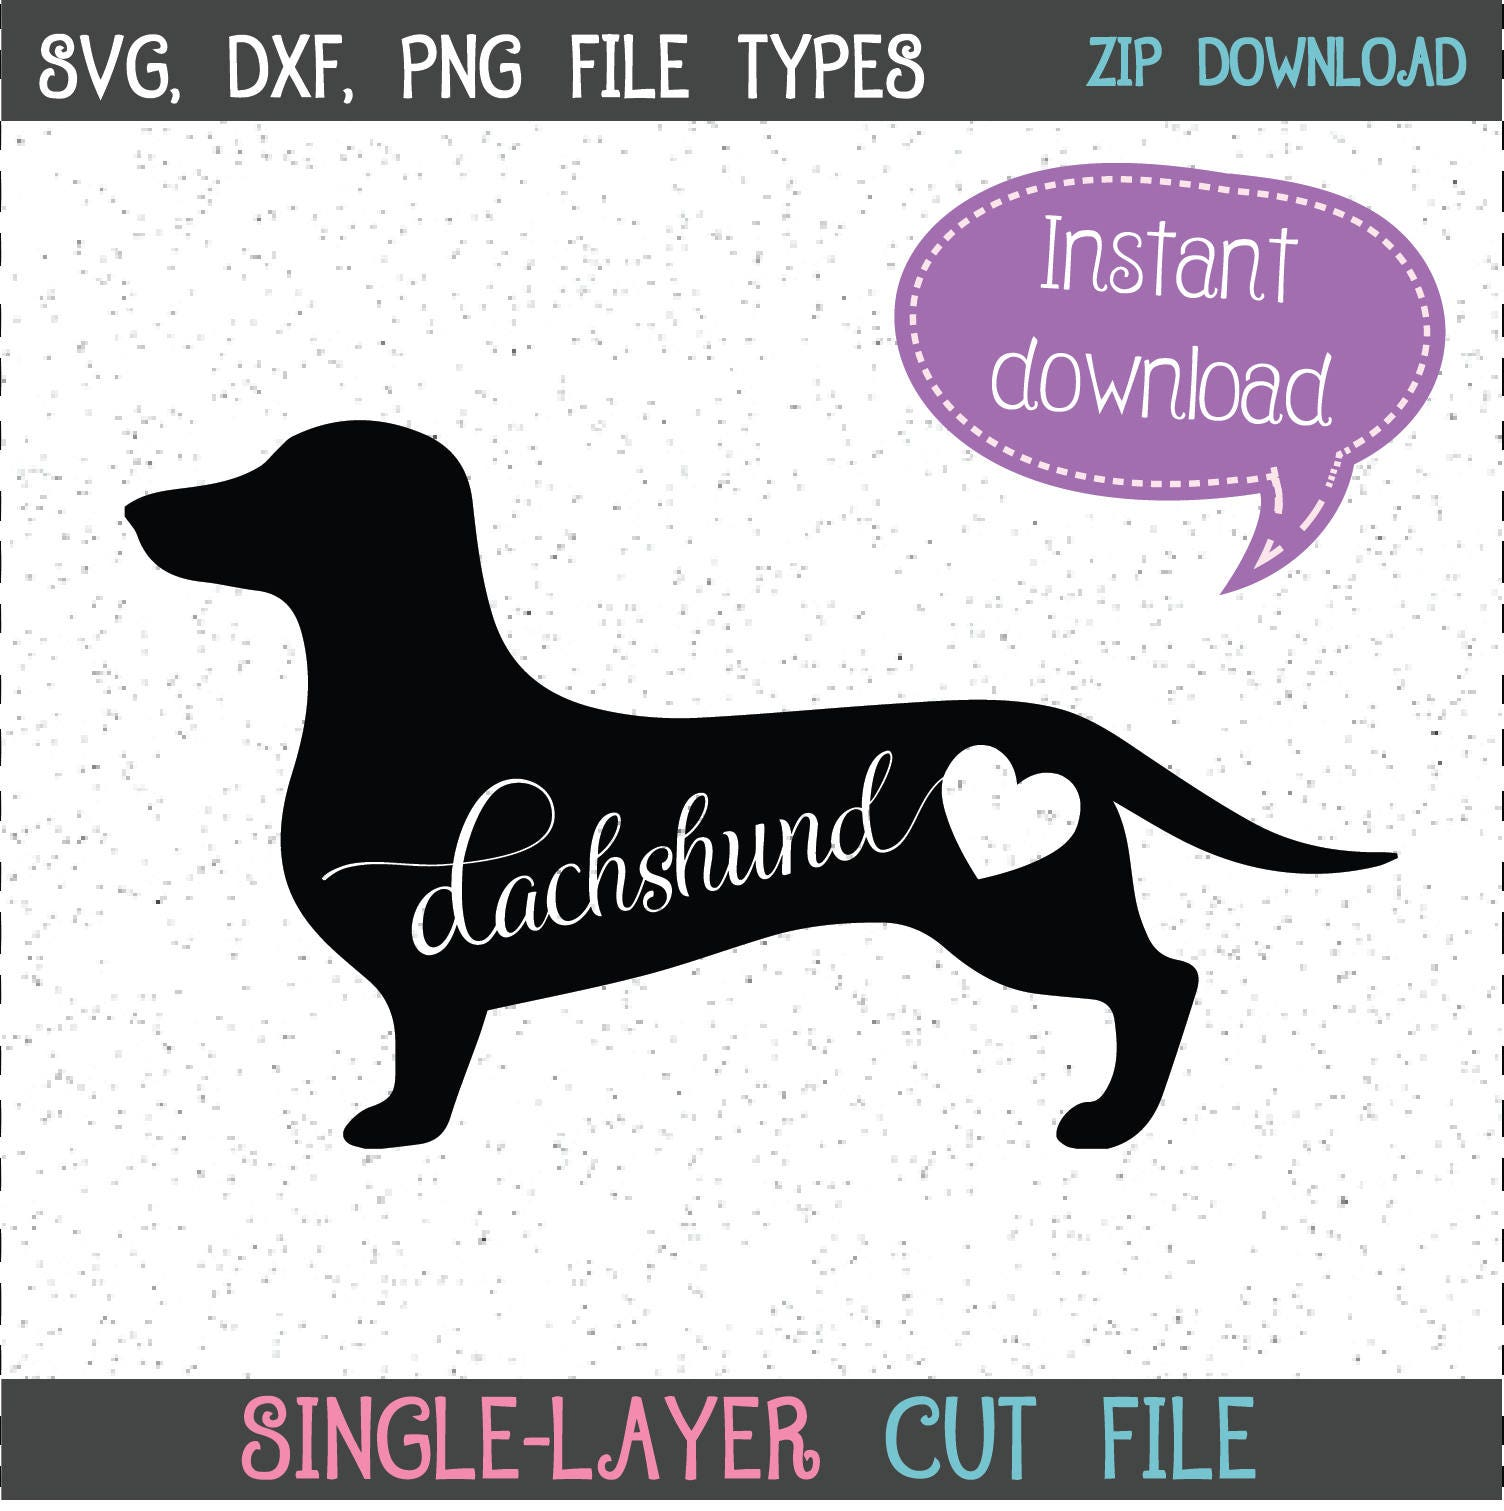 Download Dachshund SVG Dachshund SVGs Dachshunds SVG Dachshunds